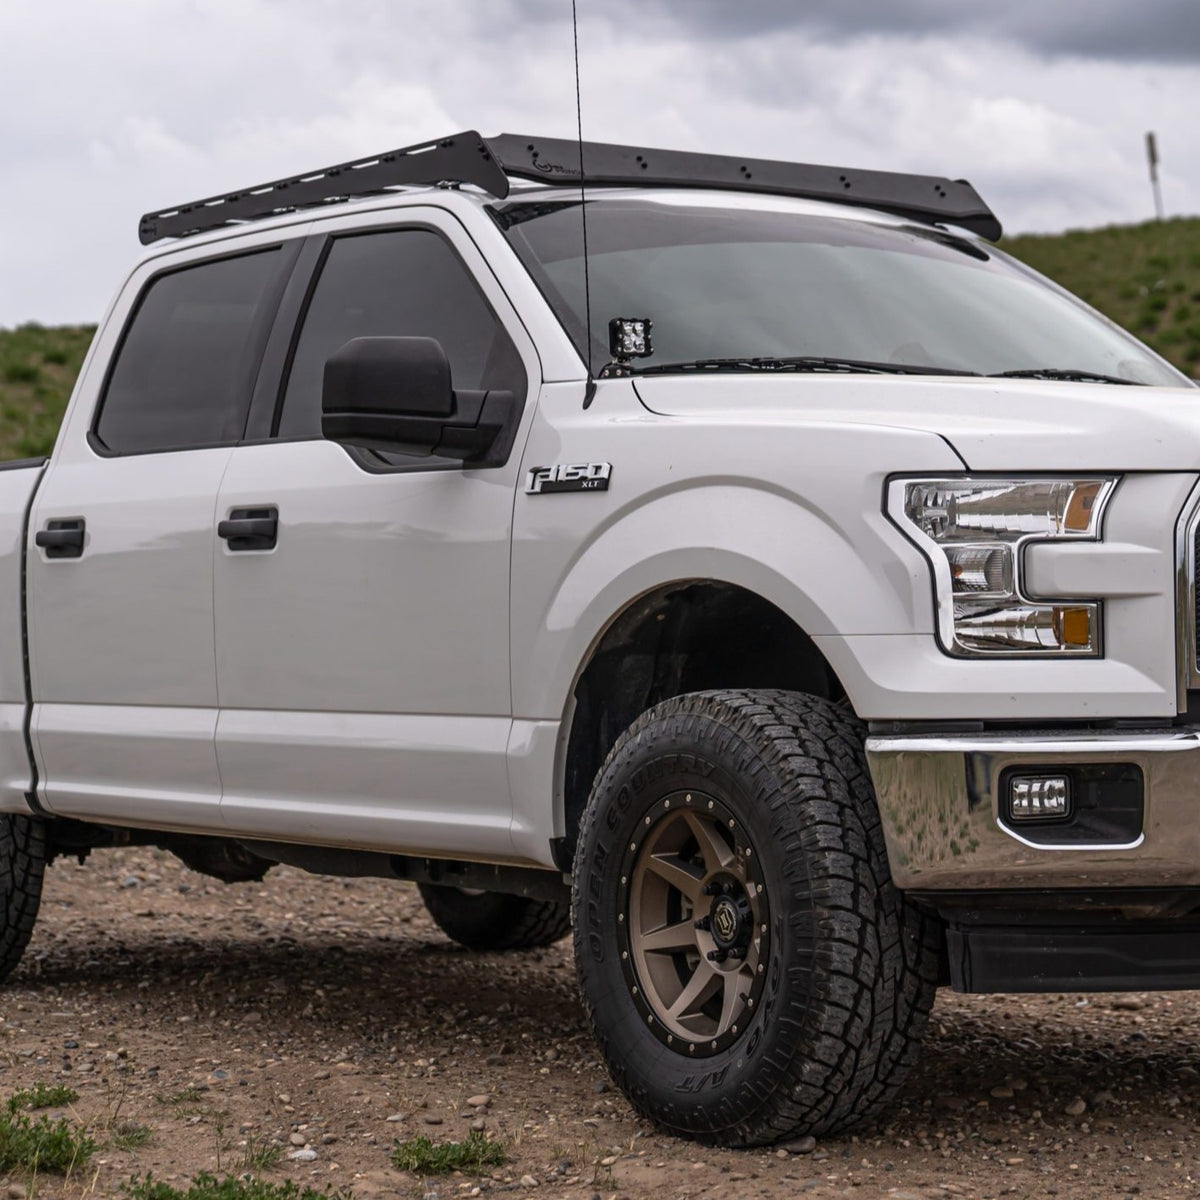 Prinsu Ford Raptor / F150 Roof Rack